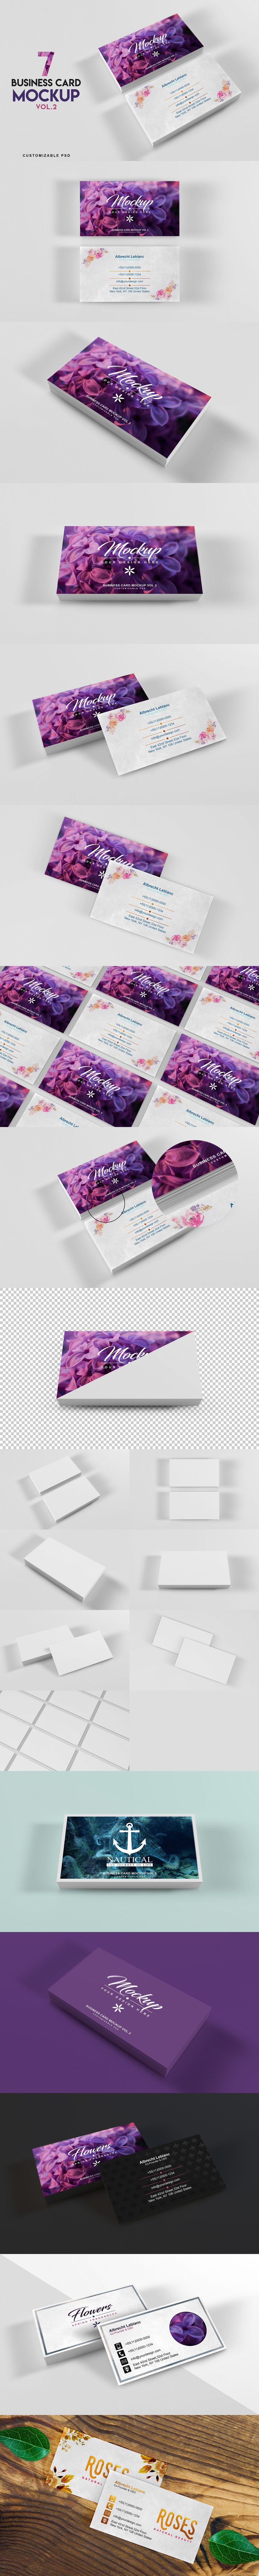 Business card mockup vol 2 photoshop download by honnumgraphicart honnumgraphicart business card mockup vol 2 photoshop download by honnumgraphicart reheart Gallery